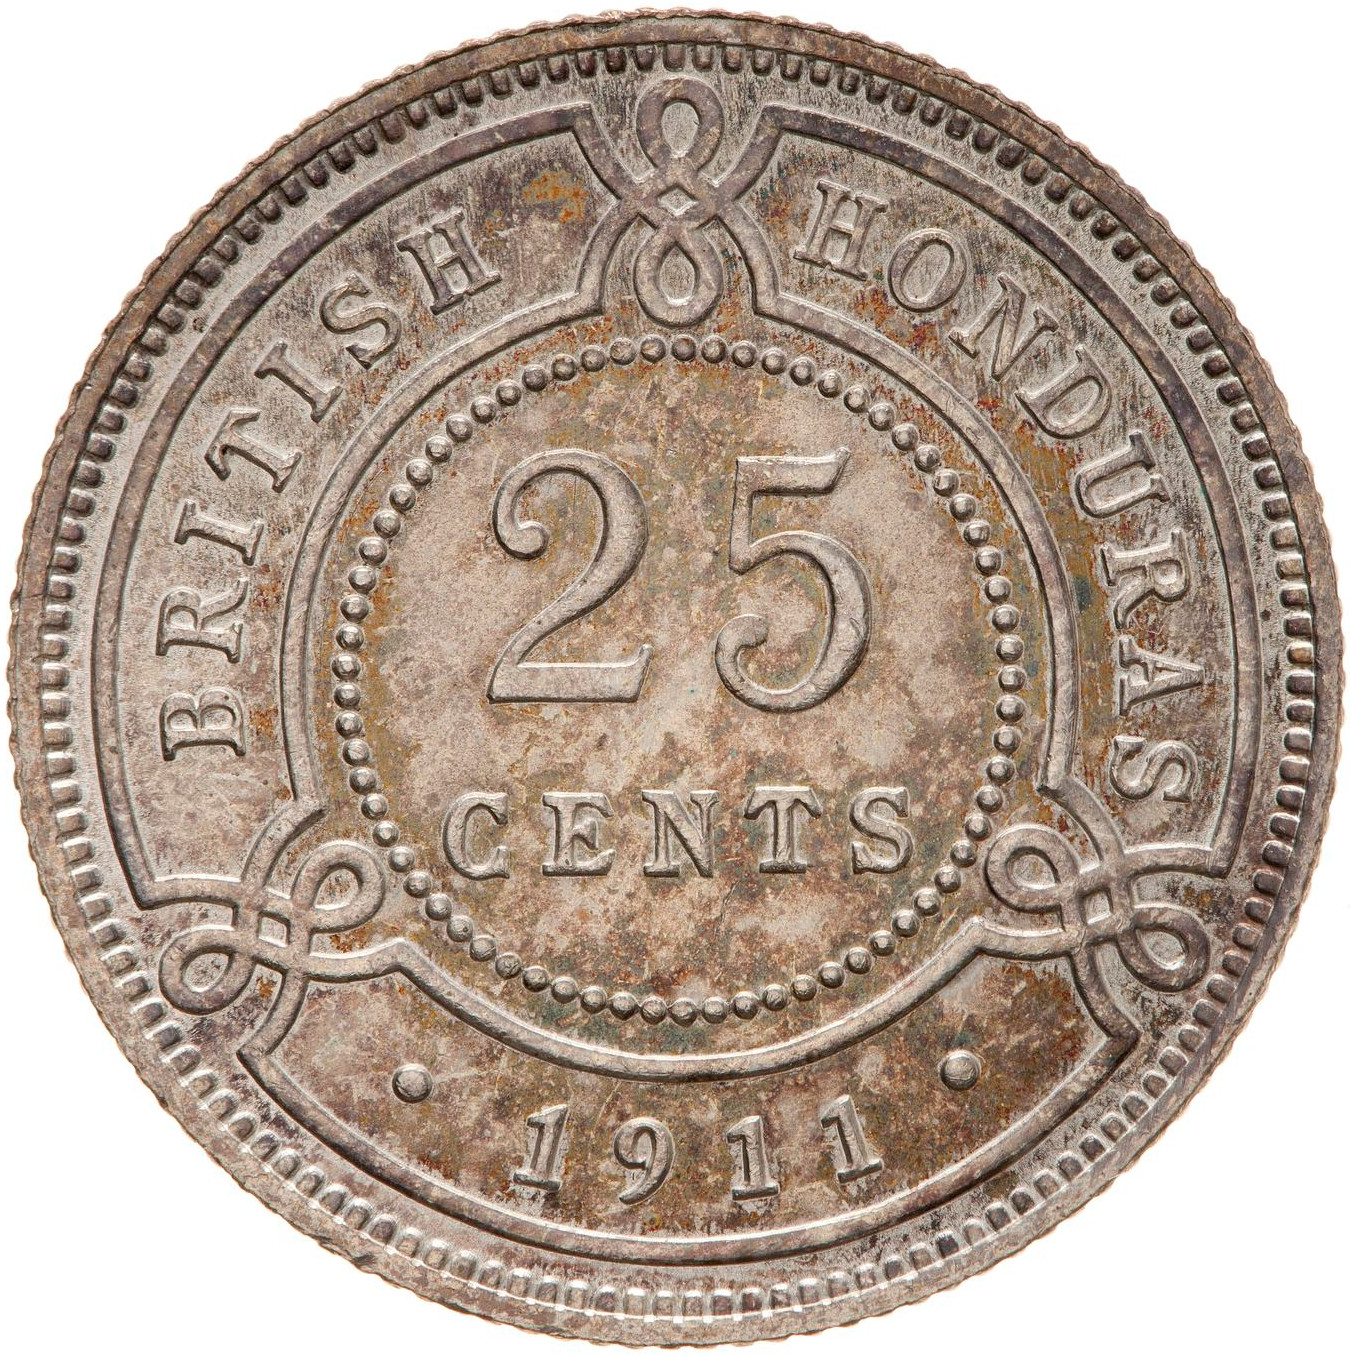 Twenty Five Cents 1911: Photo Coin - 25 Cents, British Honduras (Belize), 1911